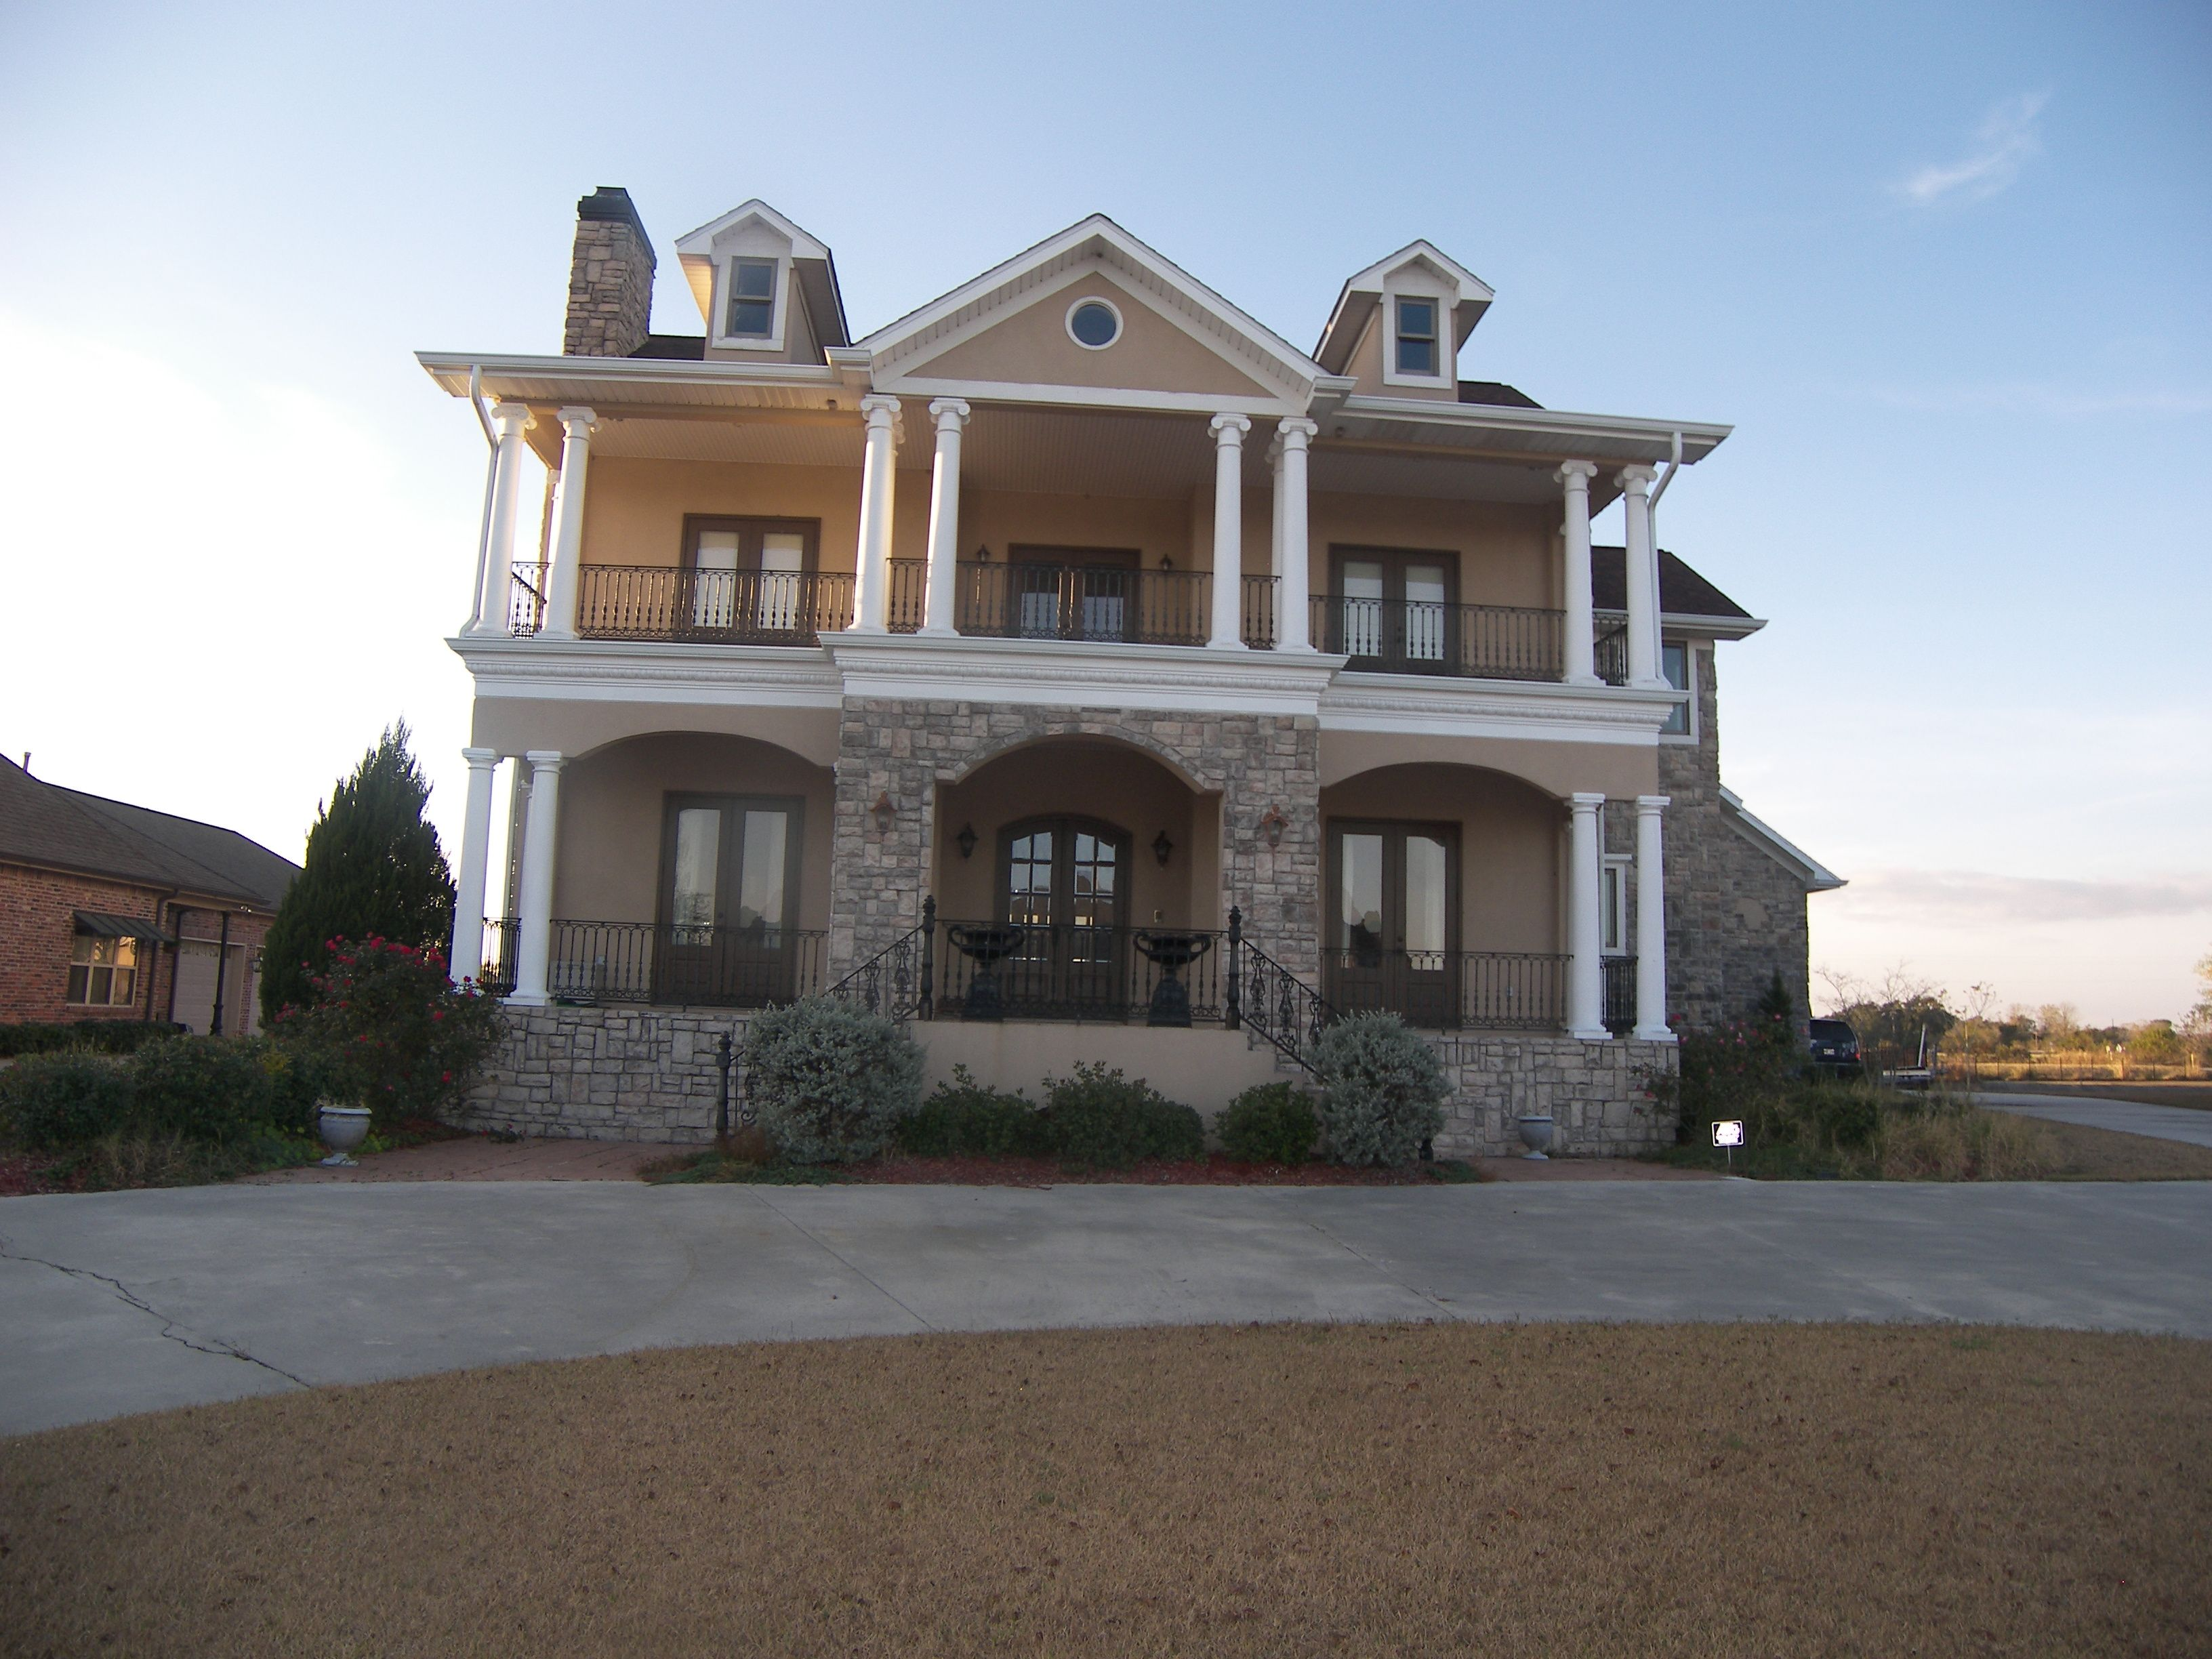 Luxury Home For Sale In Houma La 4 Bedrooms 3 5 Baths Formal Living And Dining Full Guest House With Kitchen Boathouse Wi House House Styles Luxury Homes